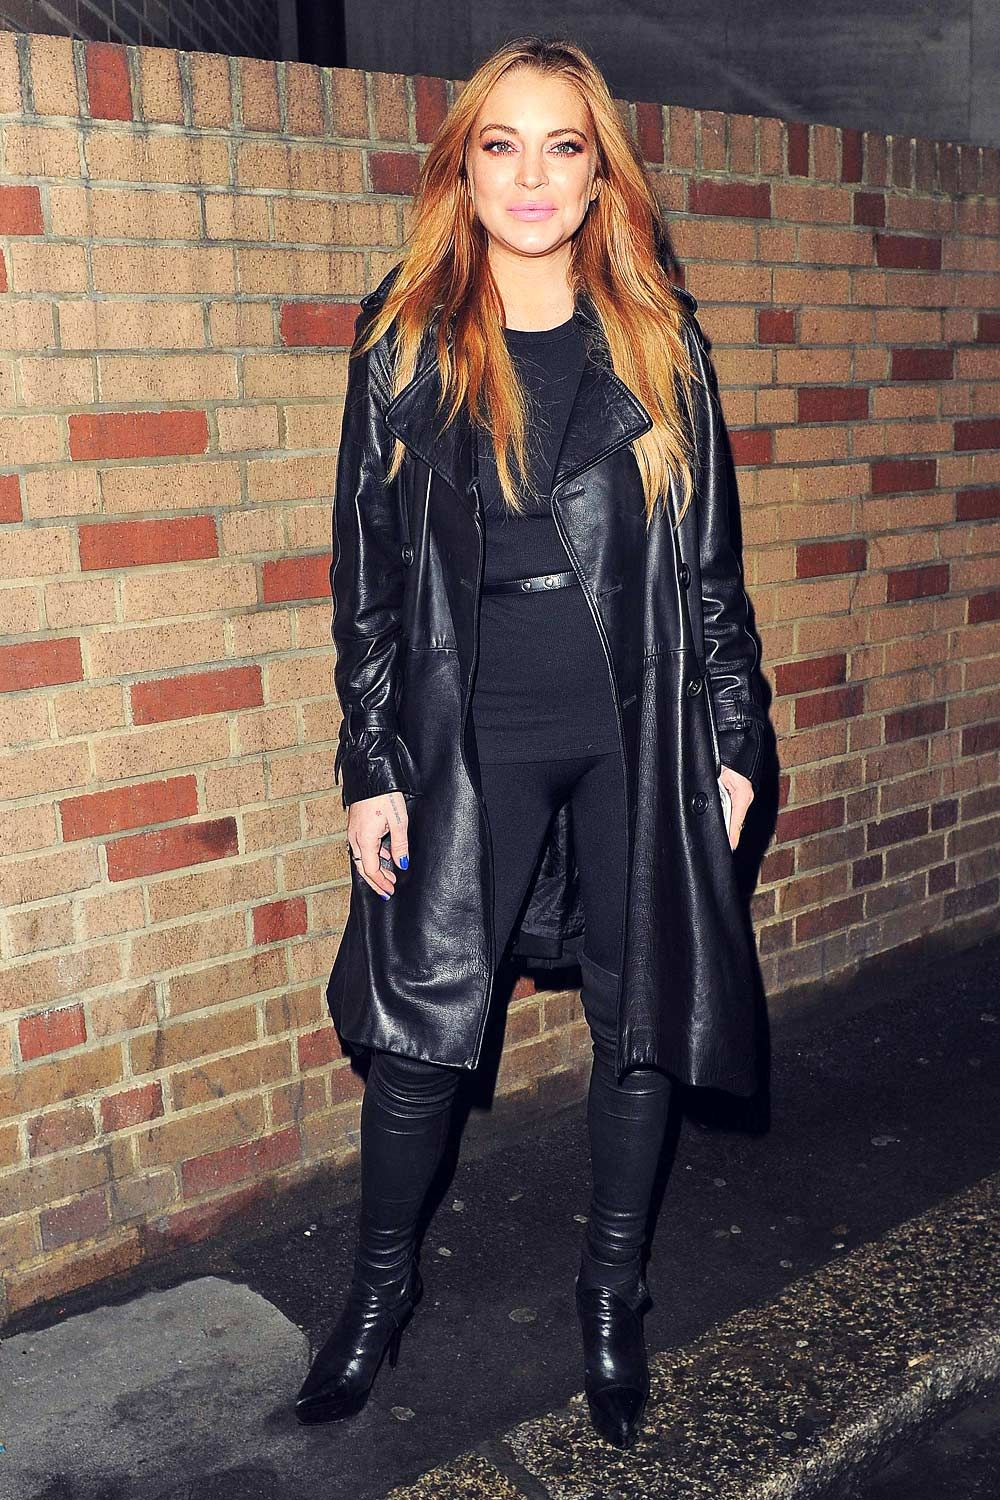 Communication on this topic: Lindsay Lohan's On Trend Fall Ensemble, lindsay-lohans-on-trend-fall-ensemble/